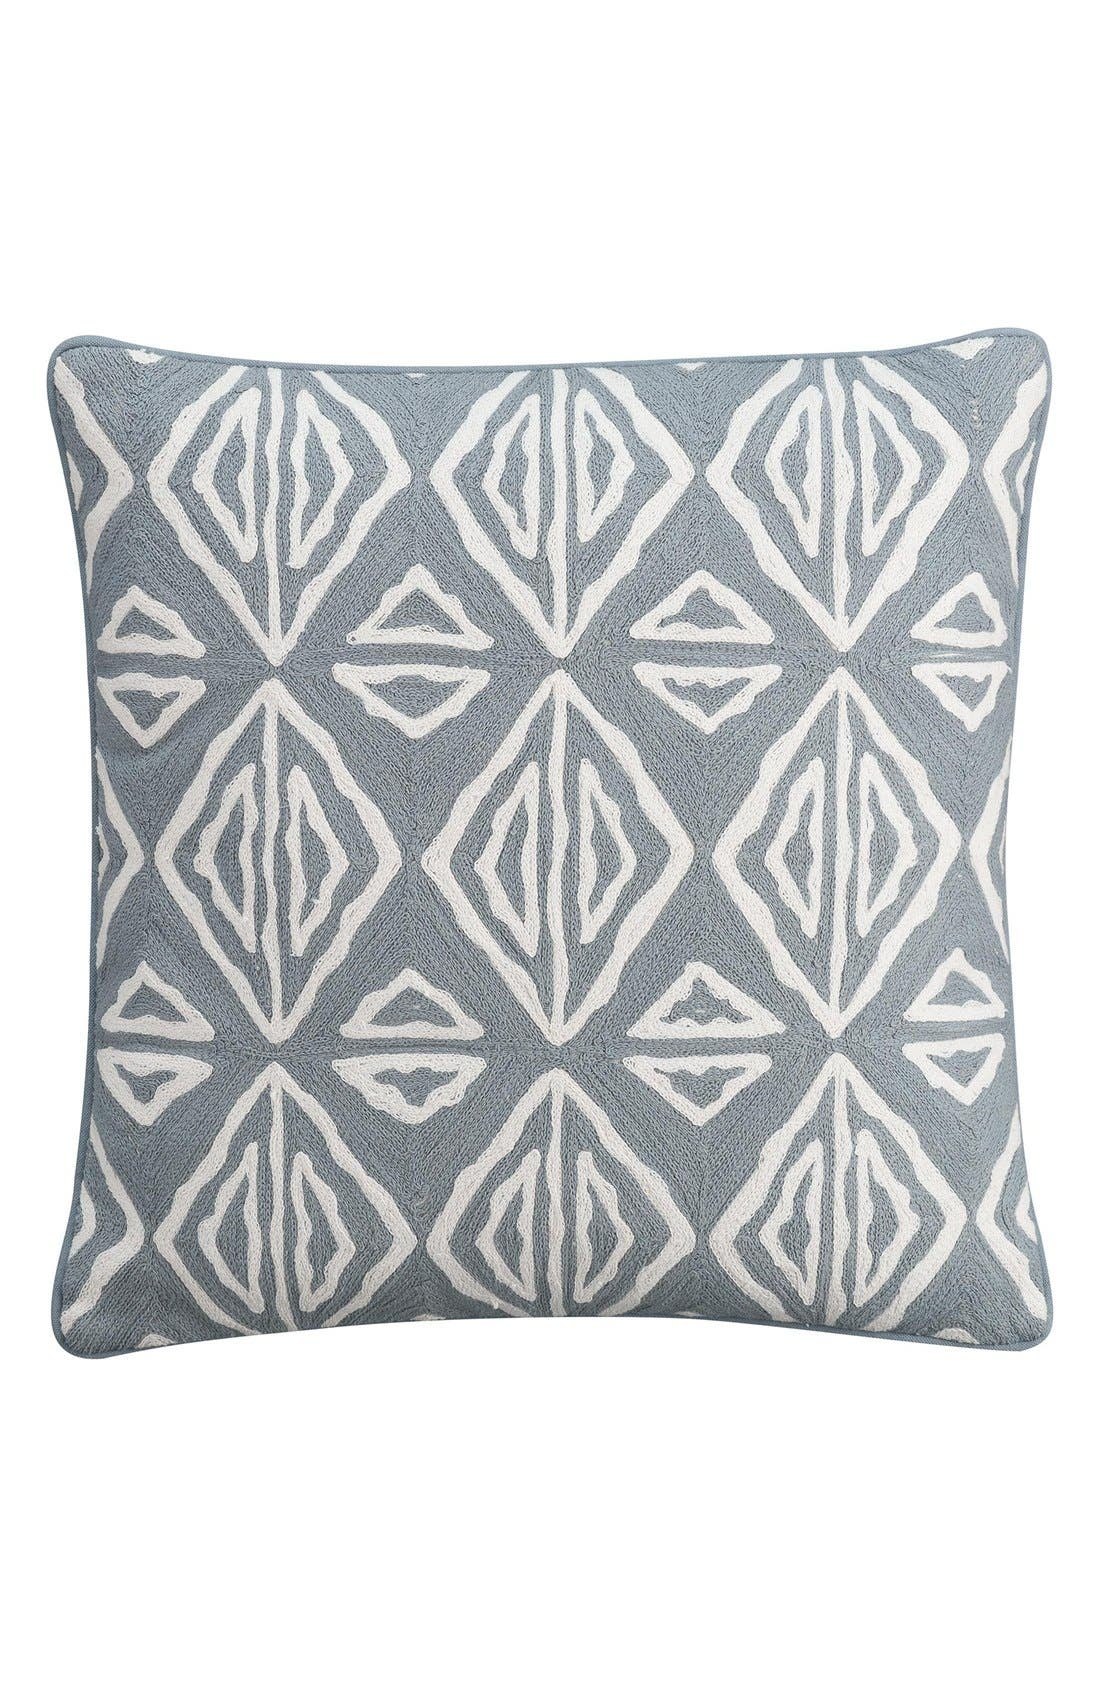 Alternate Image 1 Selected - cupcakes and cashmere 'Moroccan Geo' Crewel Embroidered Pillow